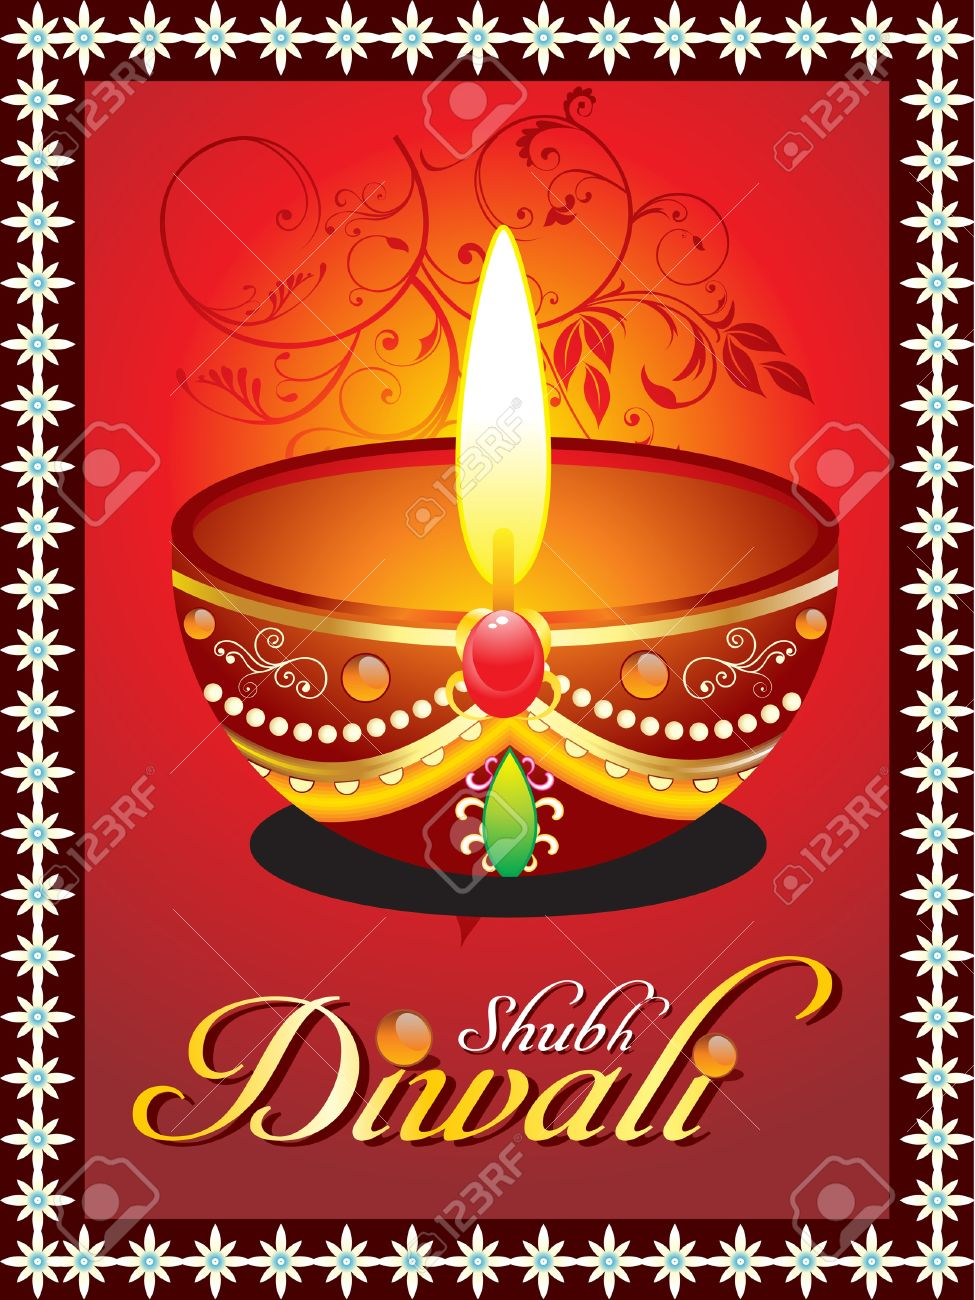 abstract diwali greeting card with floral Stock Vector - 10998651